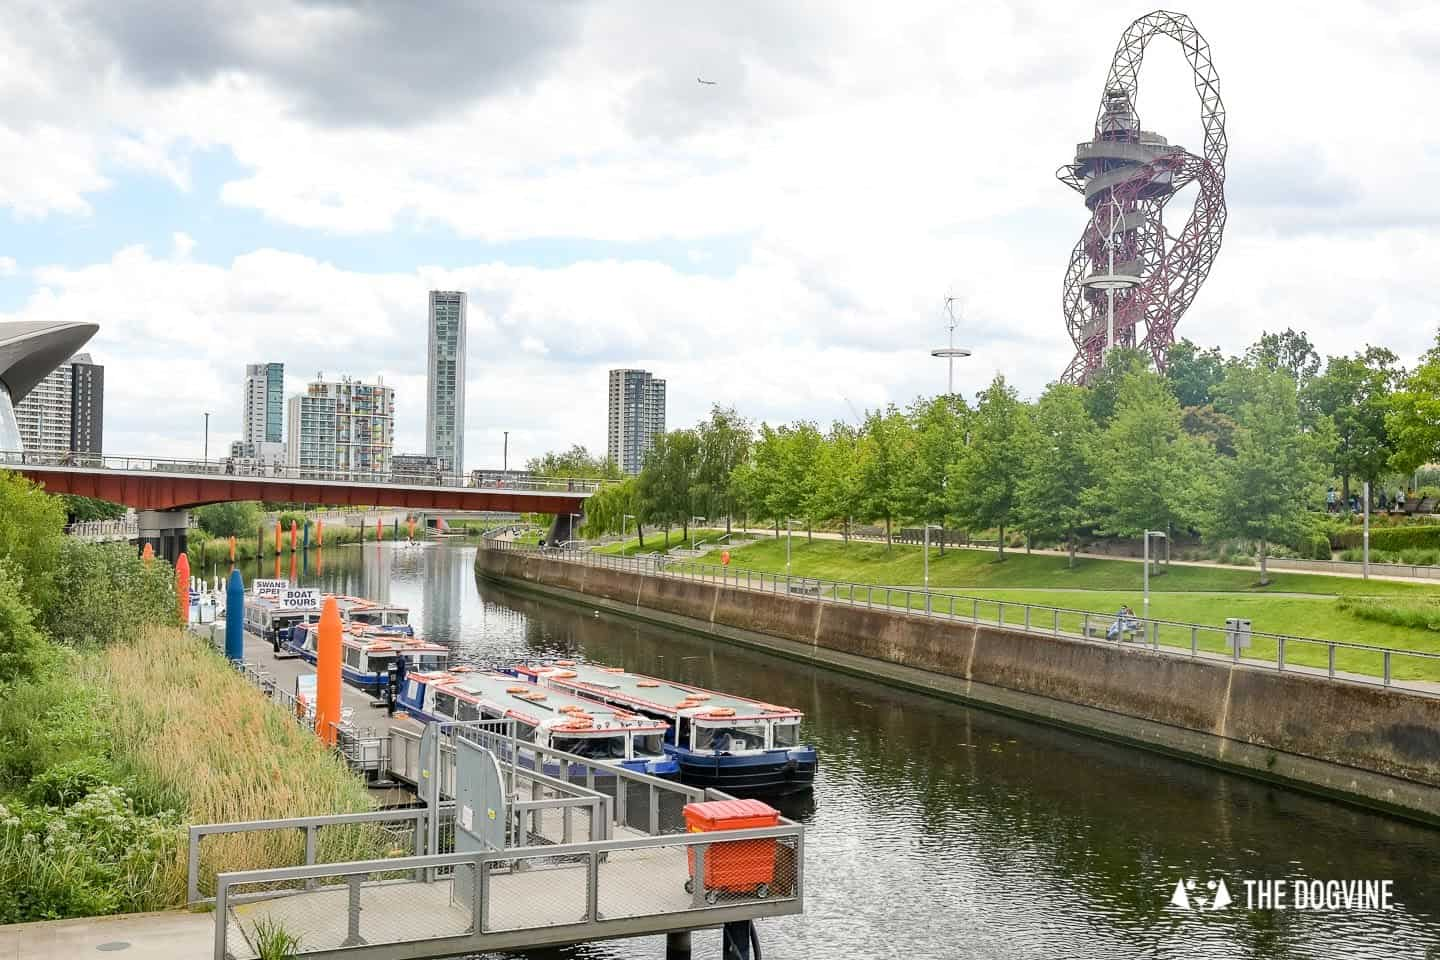 Queen Elizabeth Olympic Park Dog-friendly Boat Tours London - Lee and Stort 22